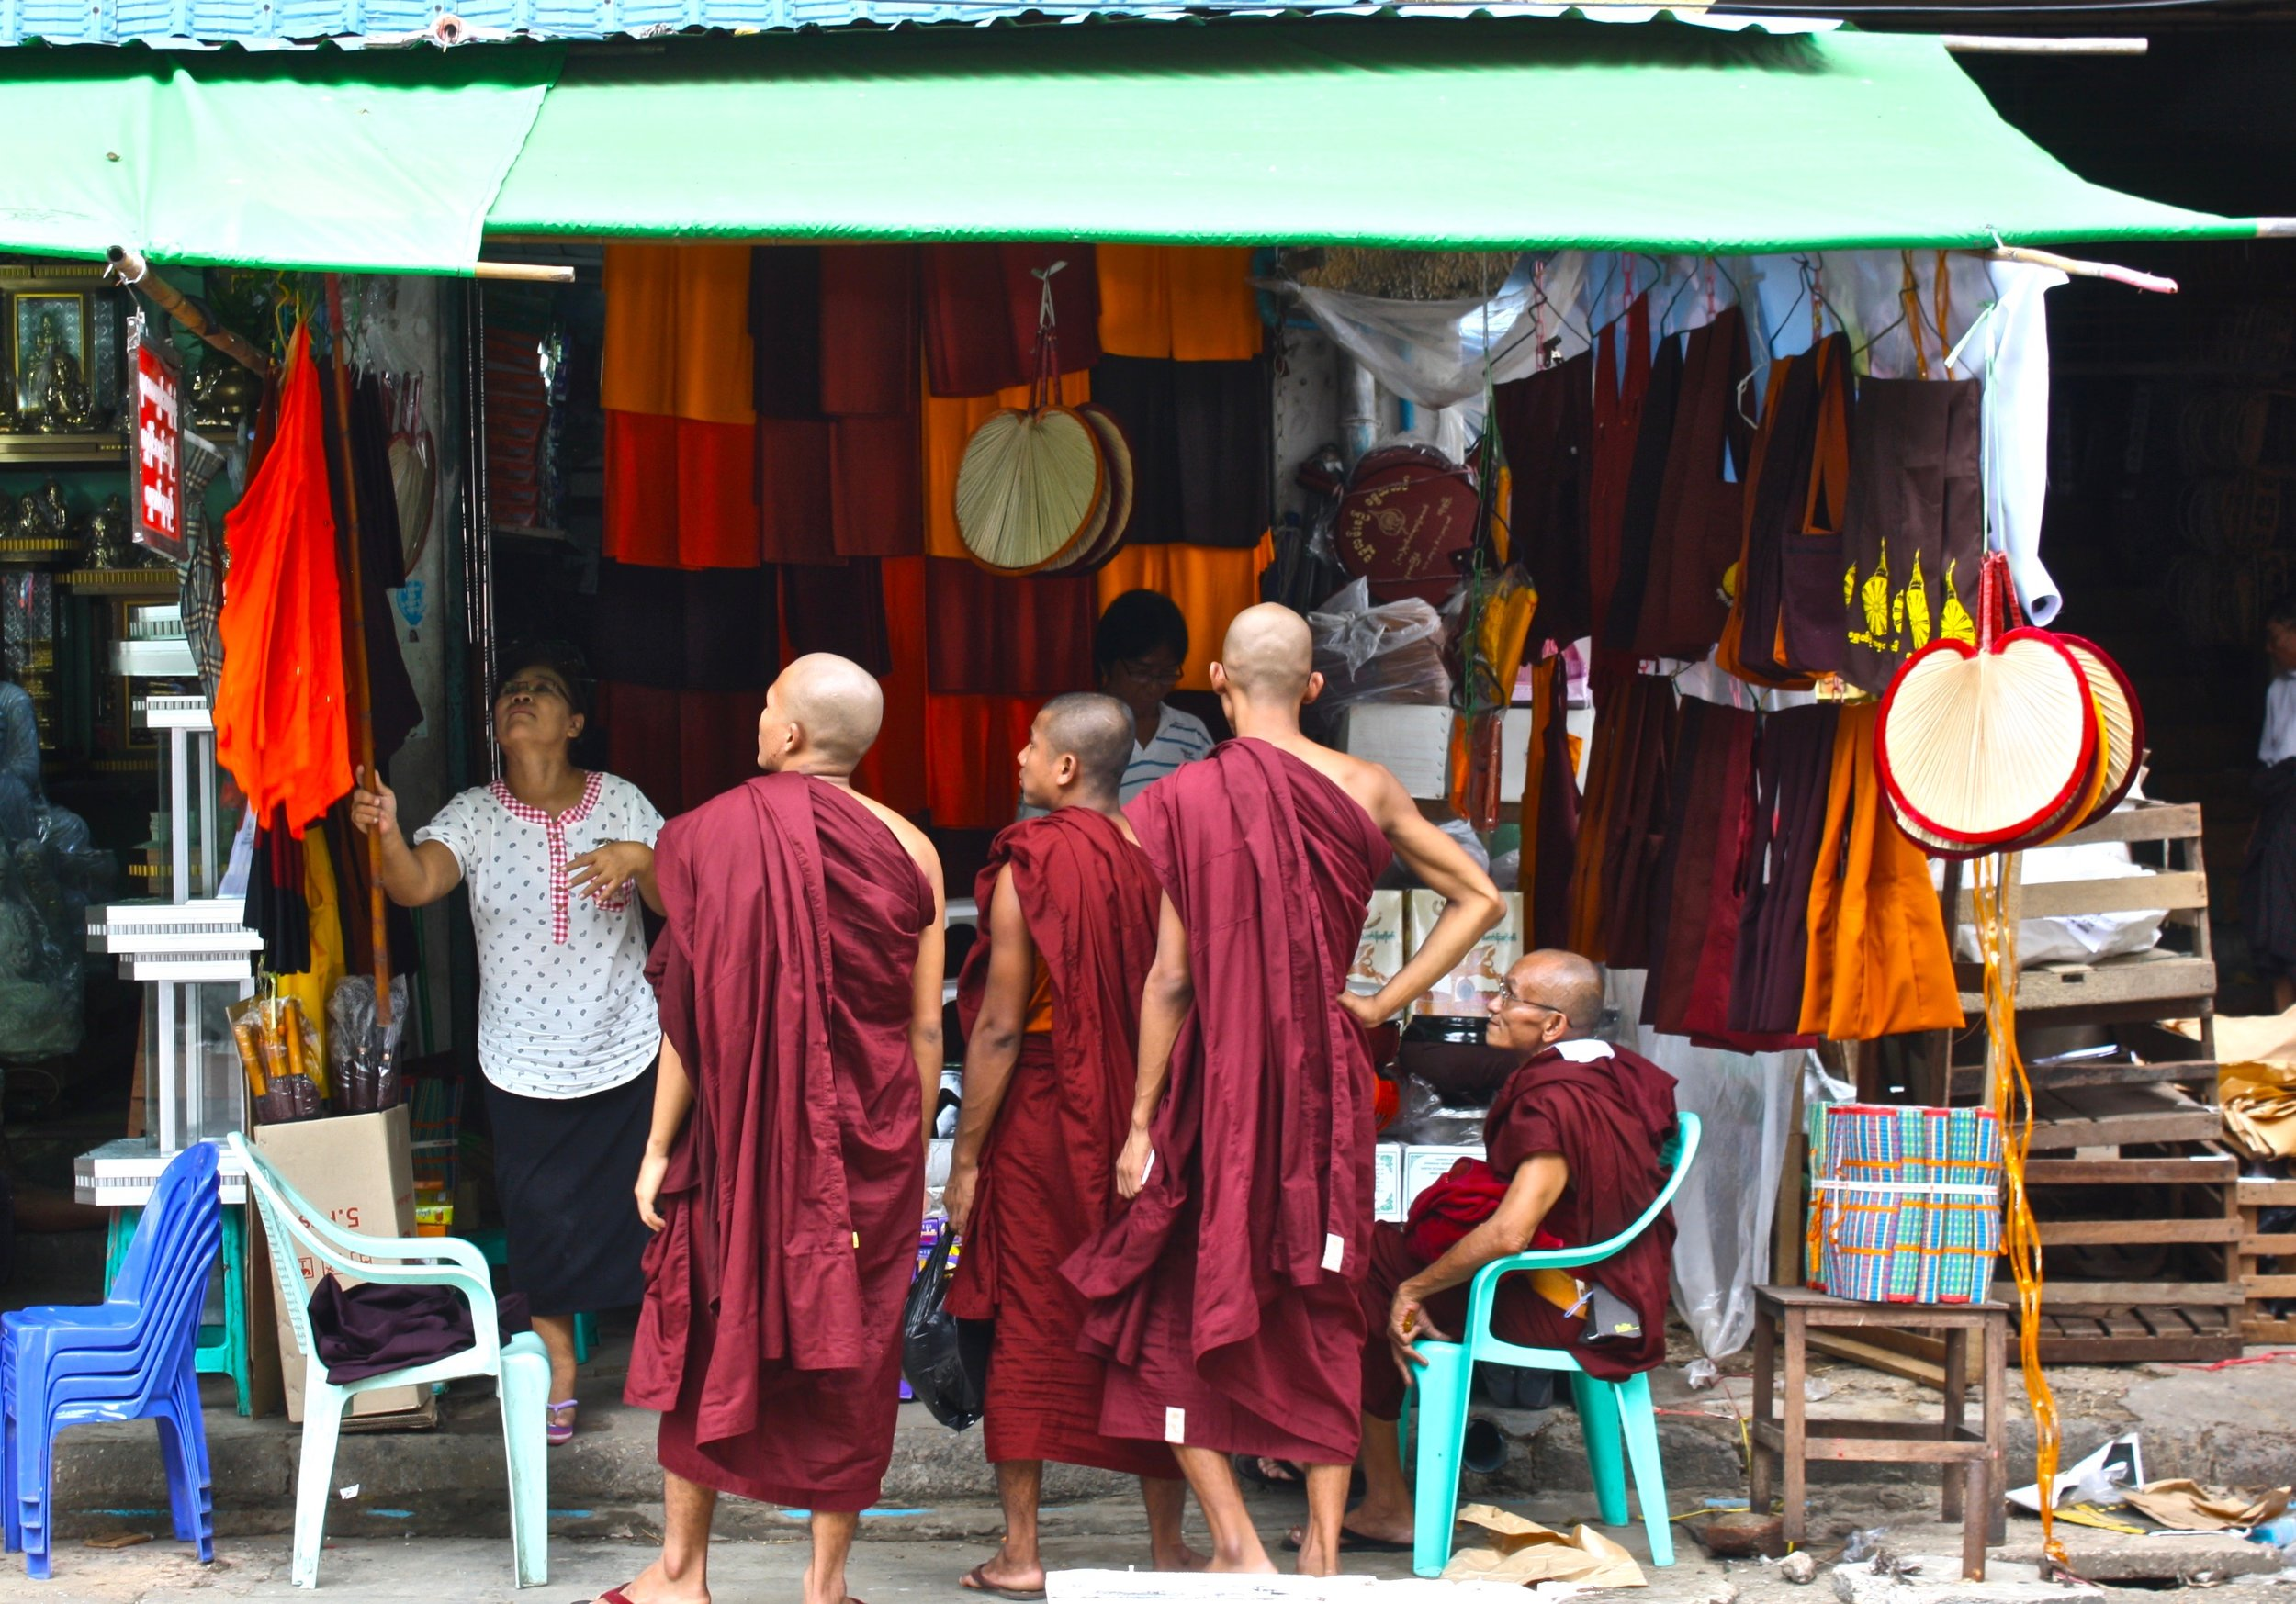 Monks in front of Shwedagon Pagoda shopping for new robes.